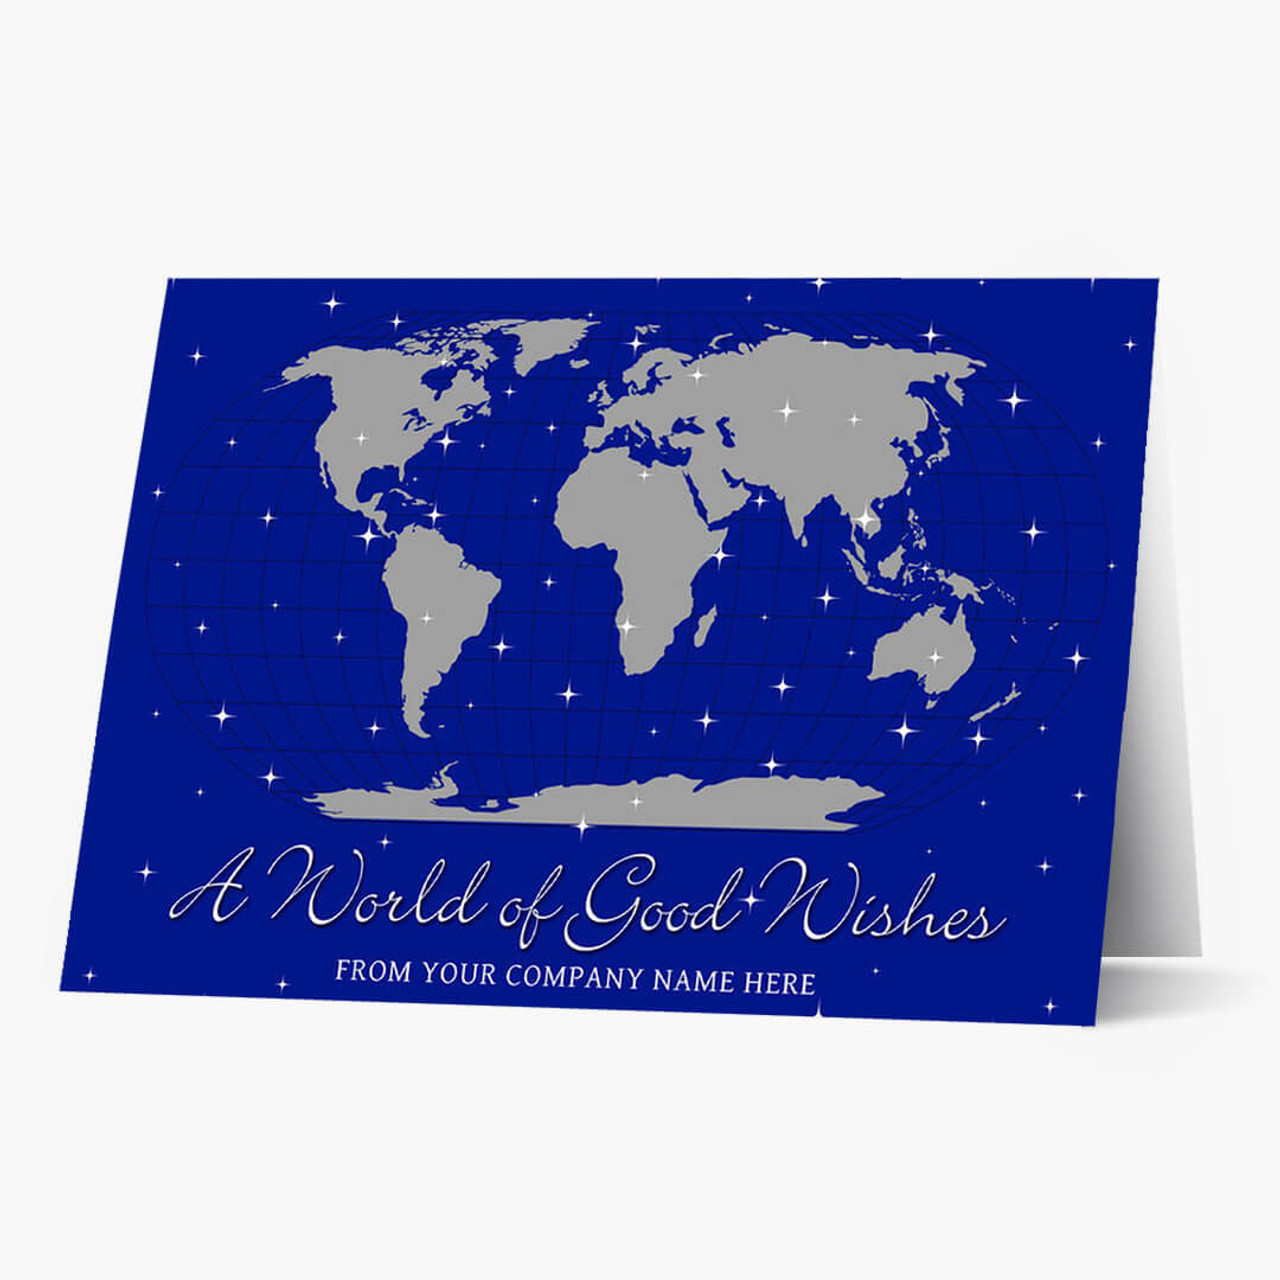 Global Good Wishes Christmas Card